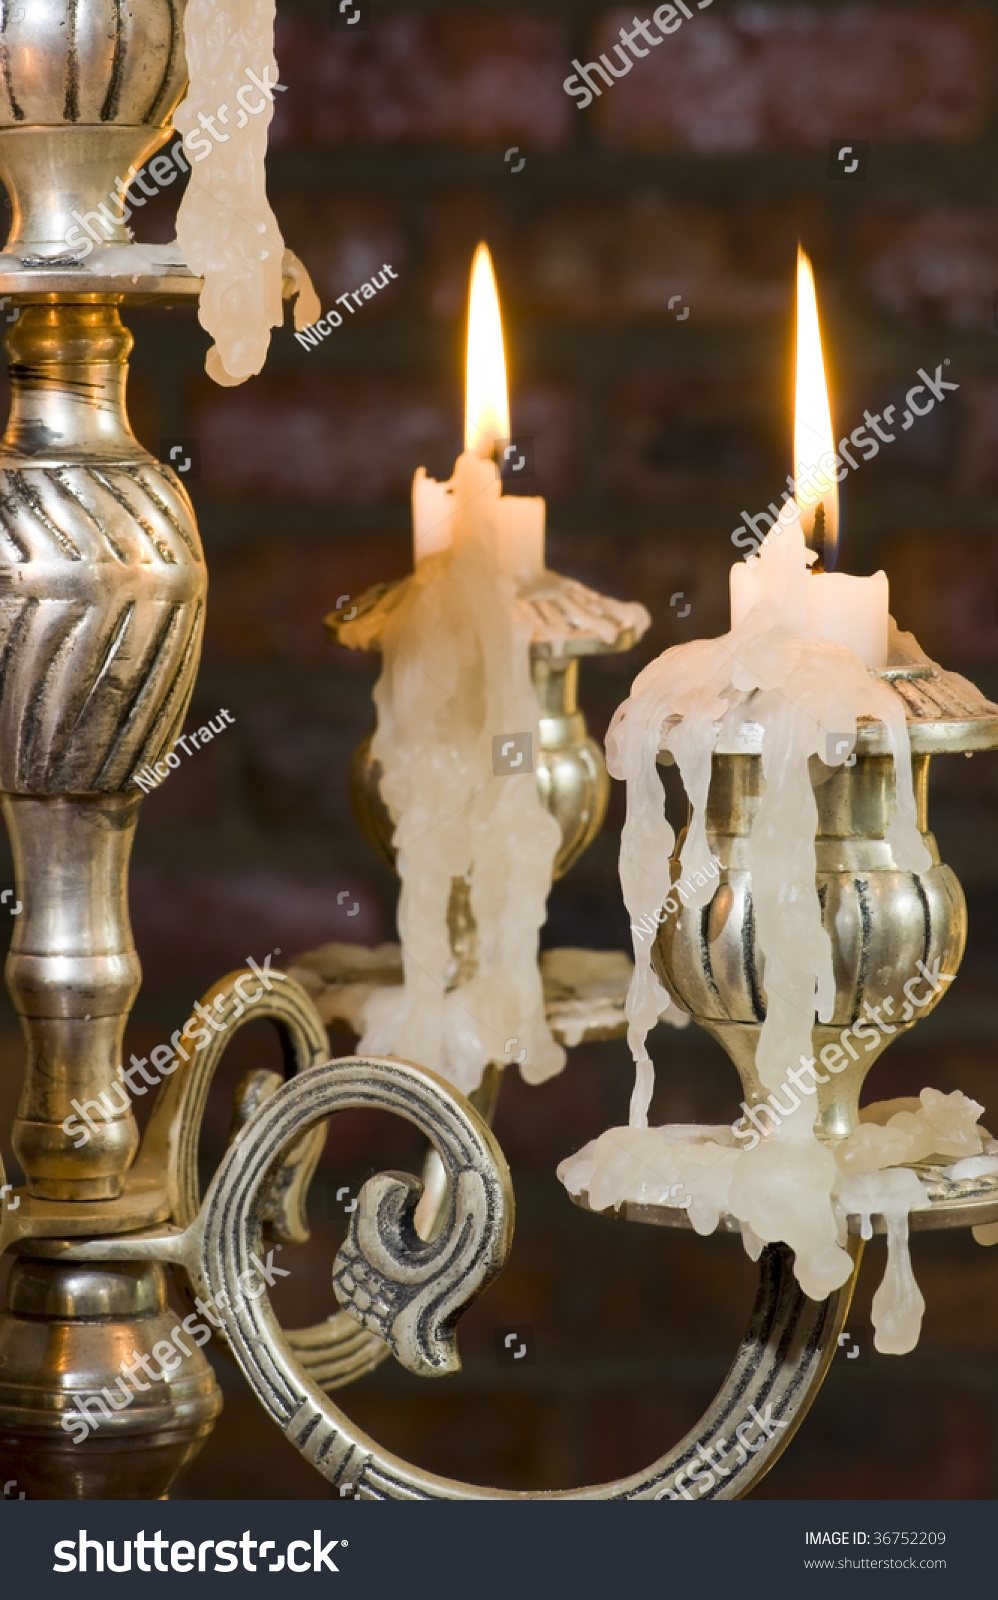 Candles chandelier thejots candles chandelier some melted wax forming stock photo lighting ideas aloadofball Choice Image